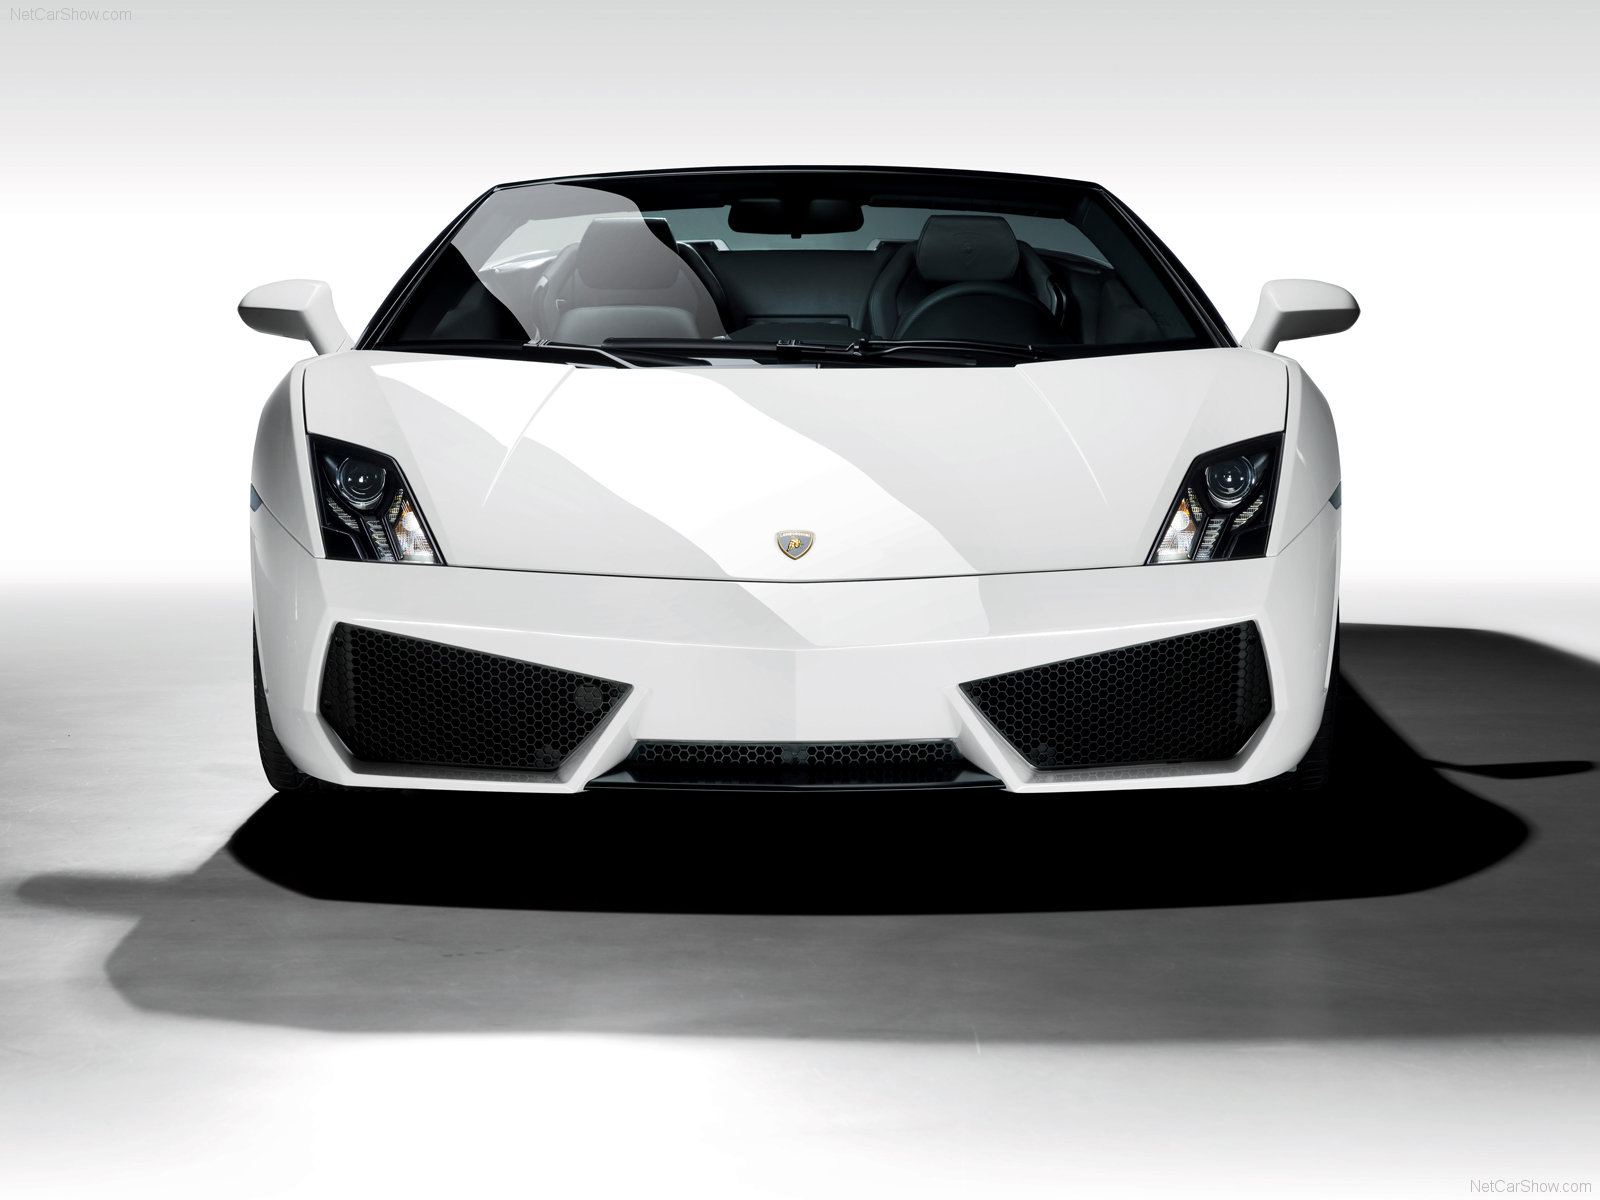 Lamborghini Gallardo LP560-4 Spyder photo 59750